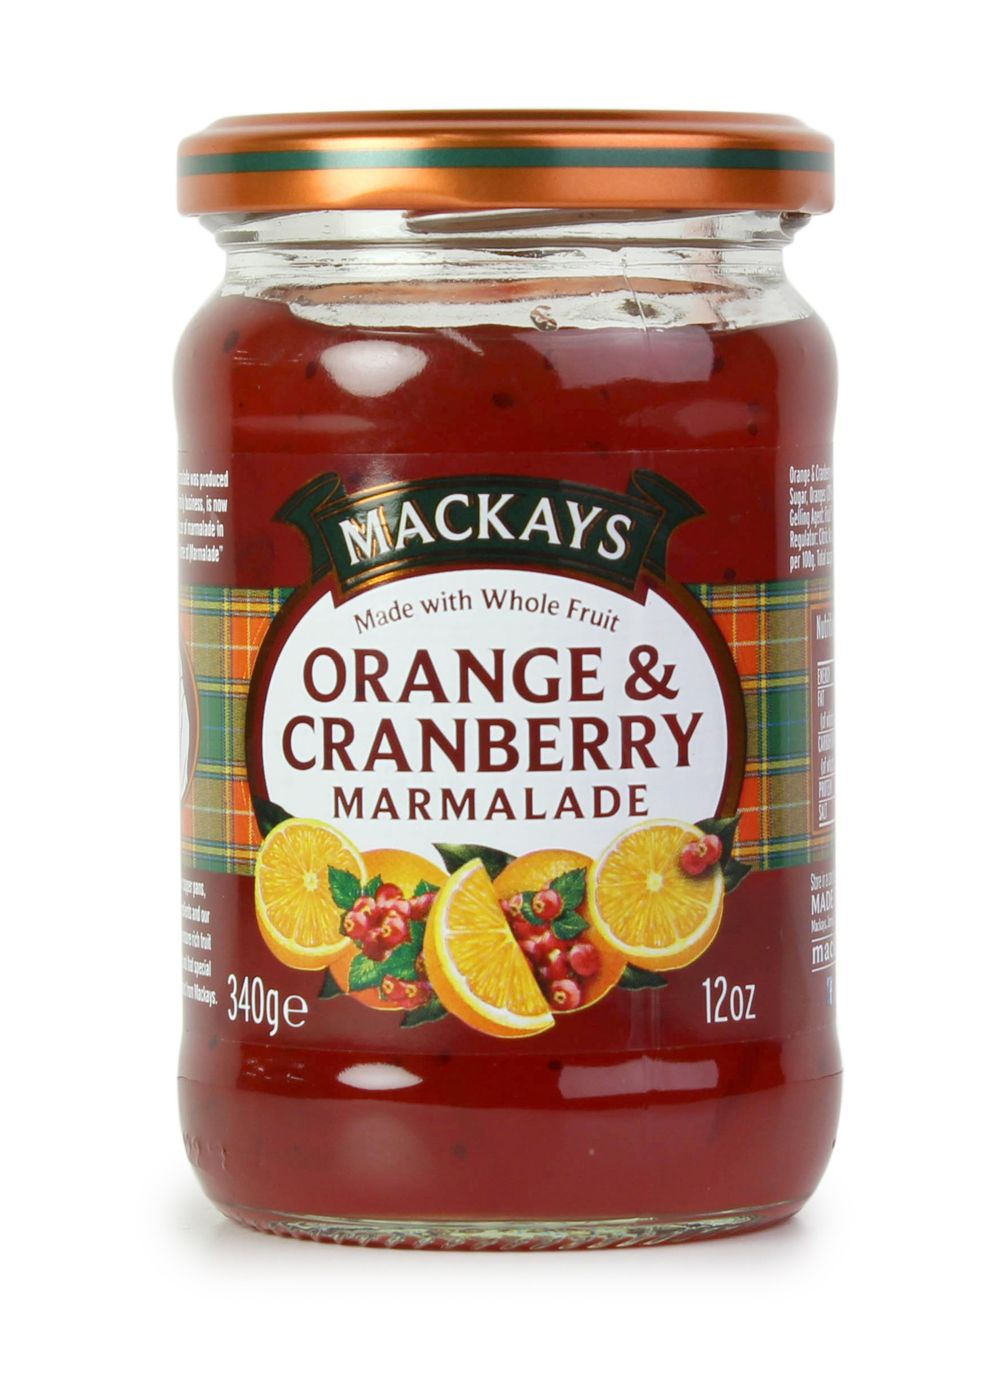 Orange & Cranberry Marmalade